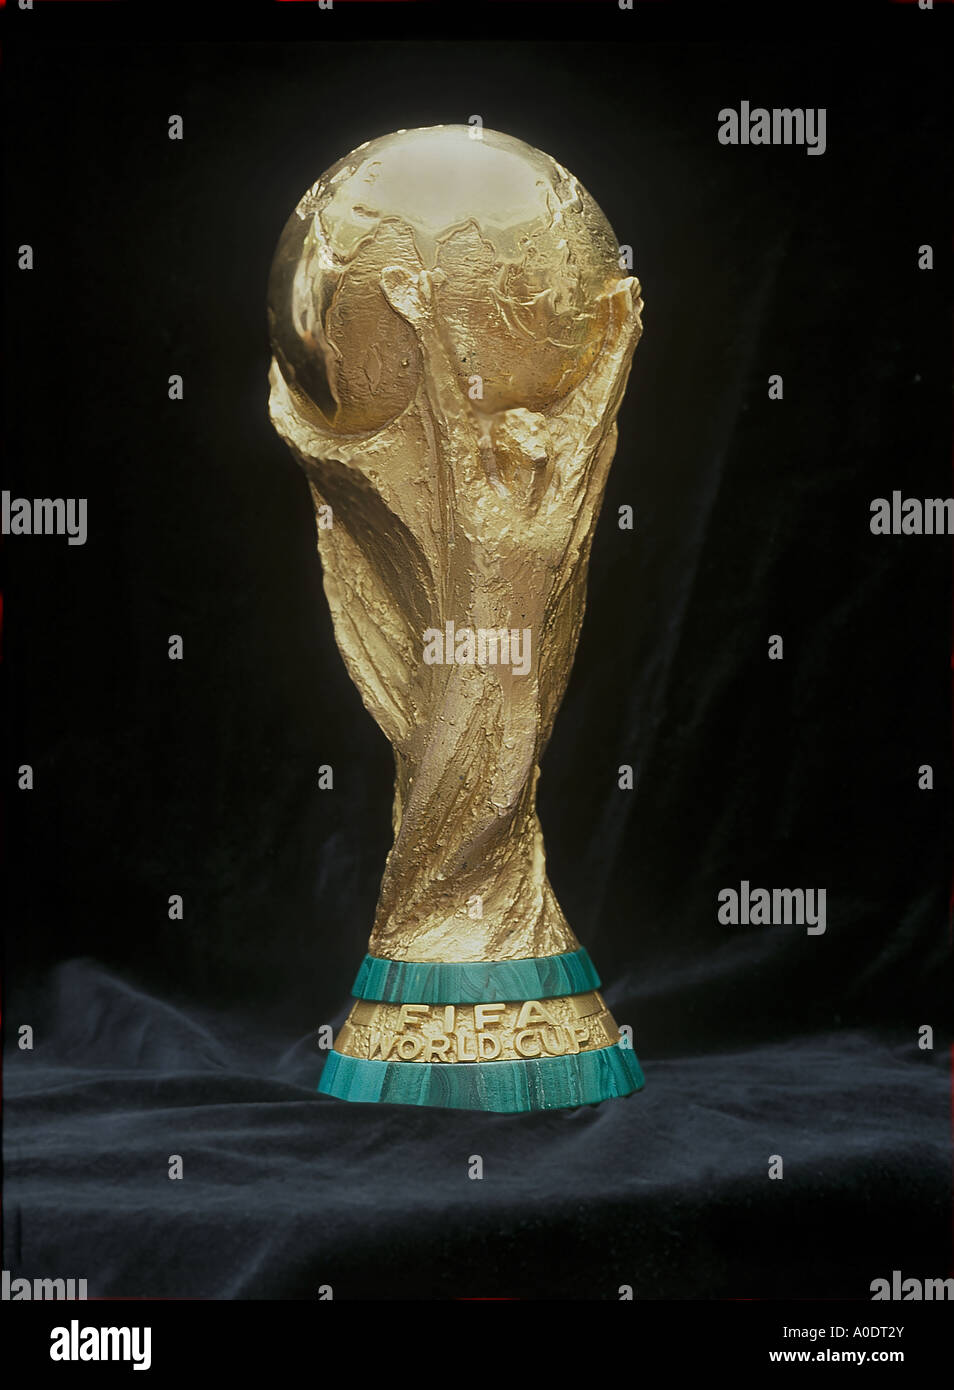 fifa world cup on a blcak background competed for by the football nations of the world On public display in London in 1995 - Stock Image